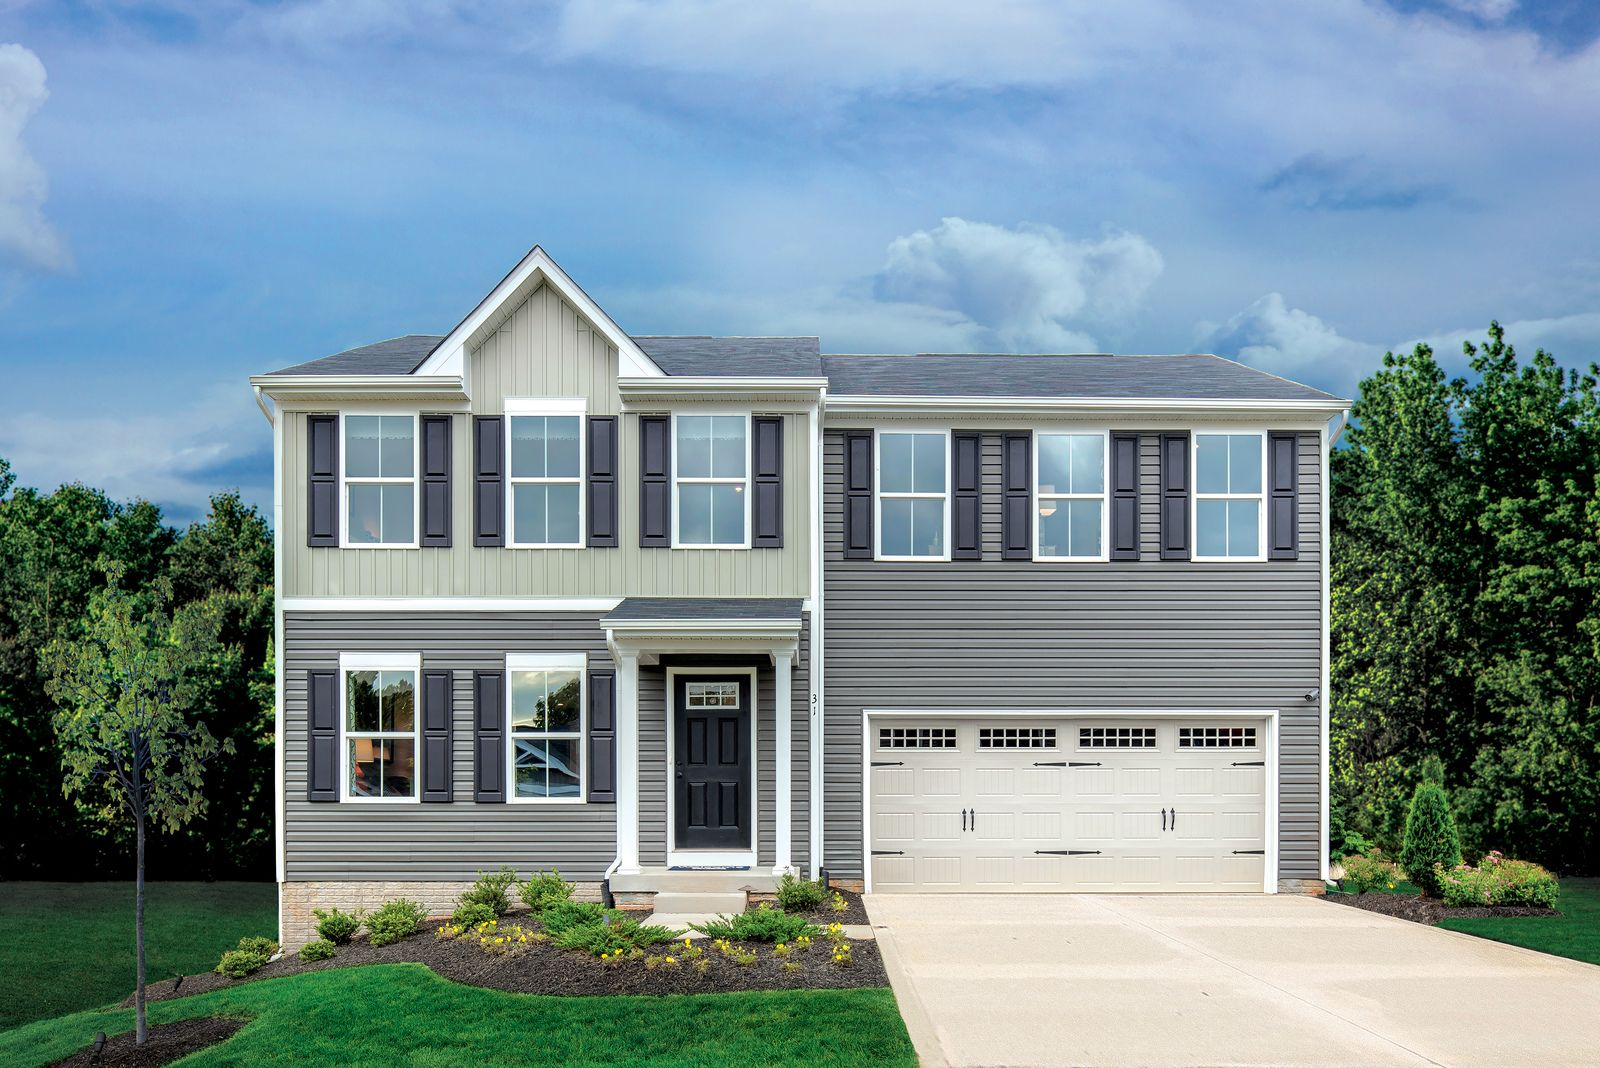 Own An Affordable Home in Concord